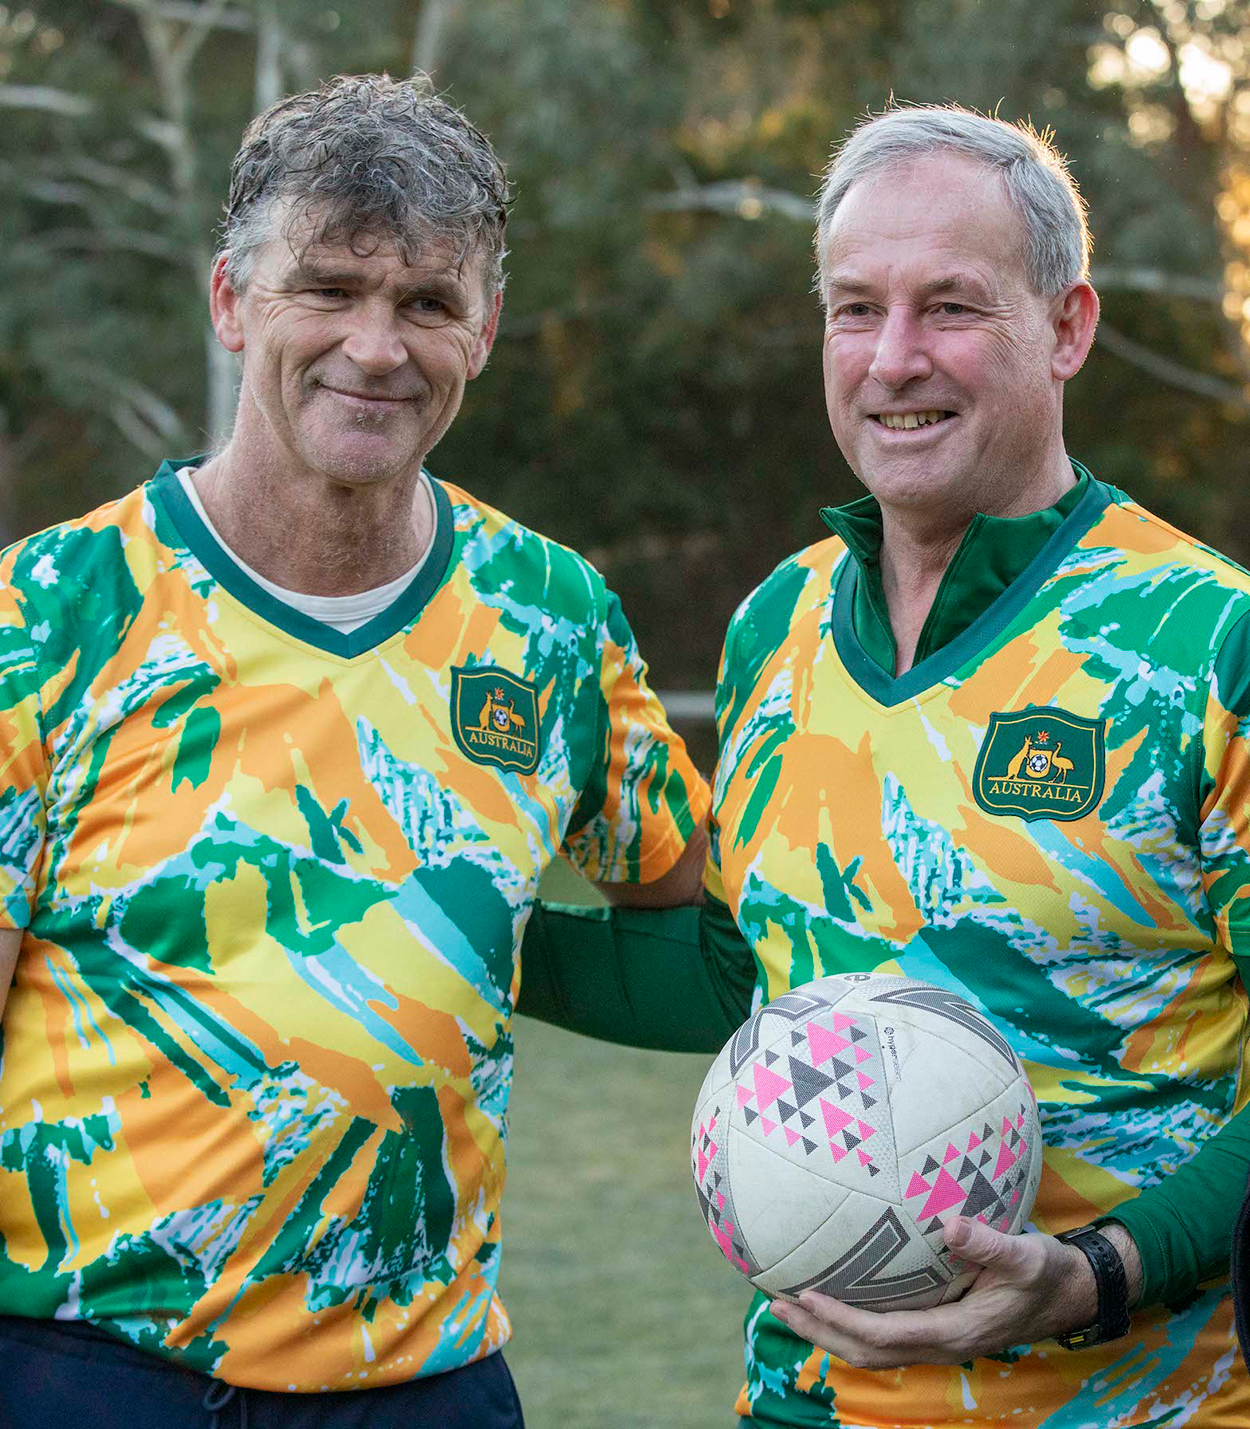 Former Socceroos captain Alex Tobin and Minister for Youth and Sport Richard Colbeck.